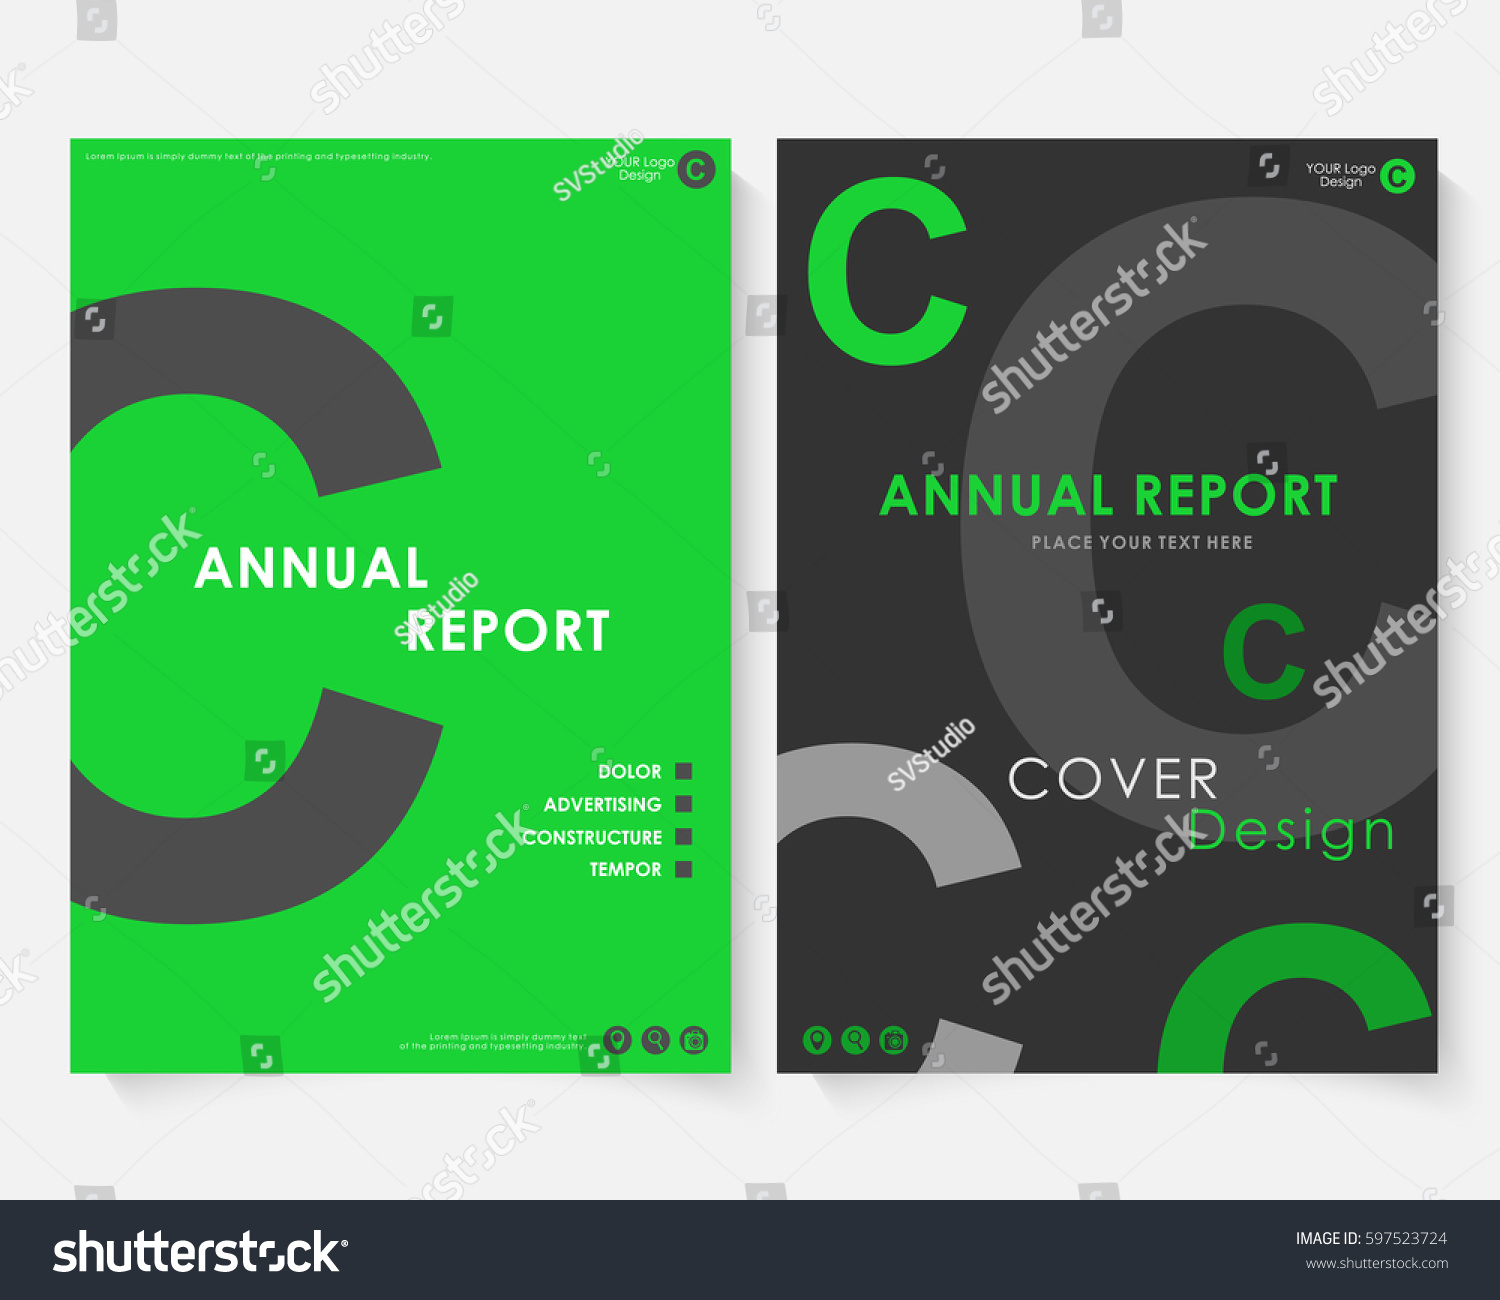 Green Square Annual Report Cover Design Stock Vector Royalty Free